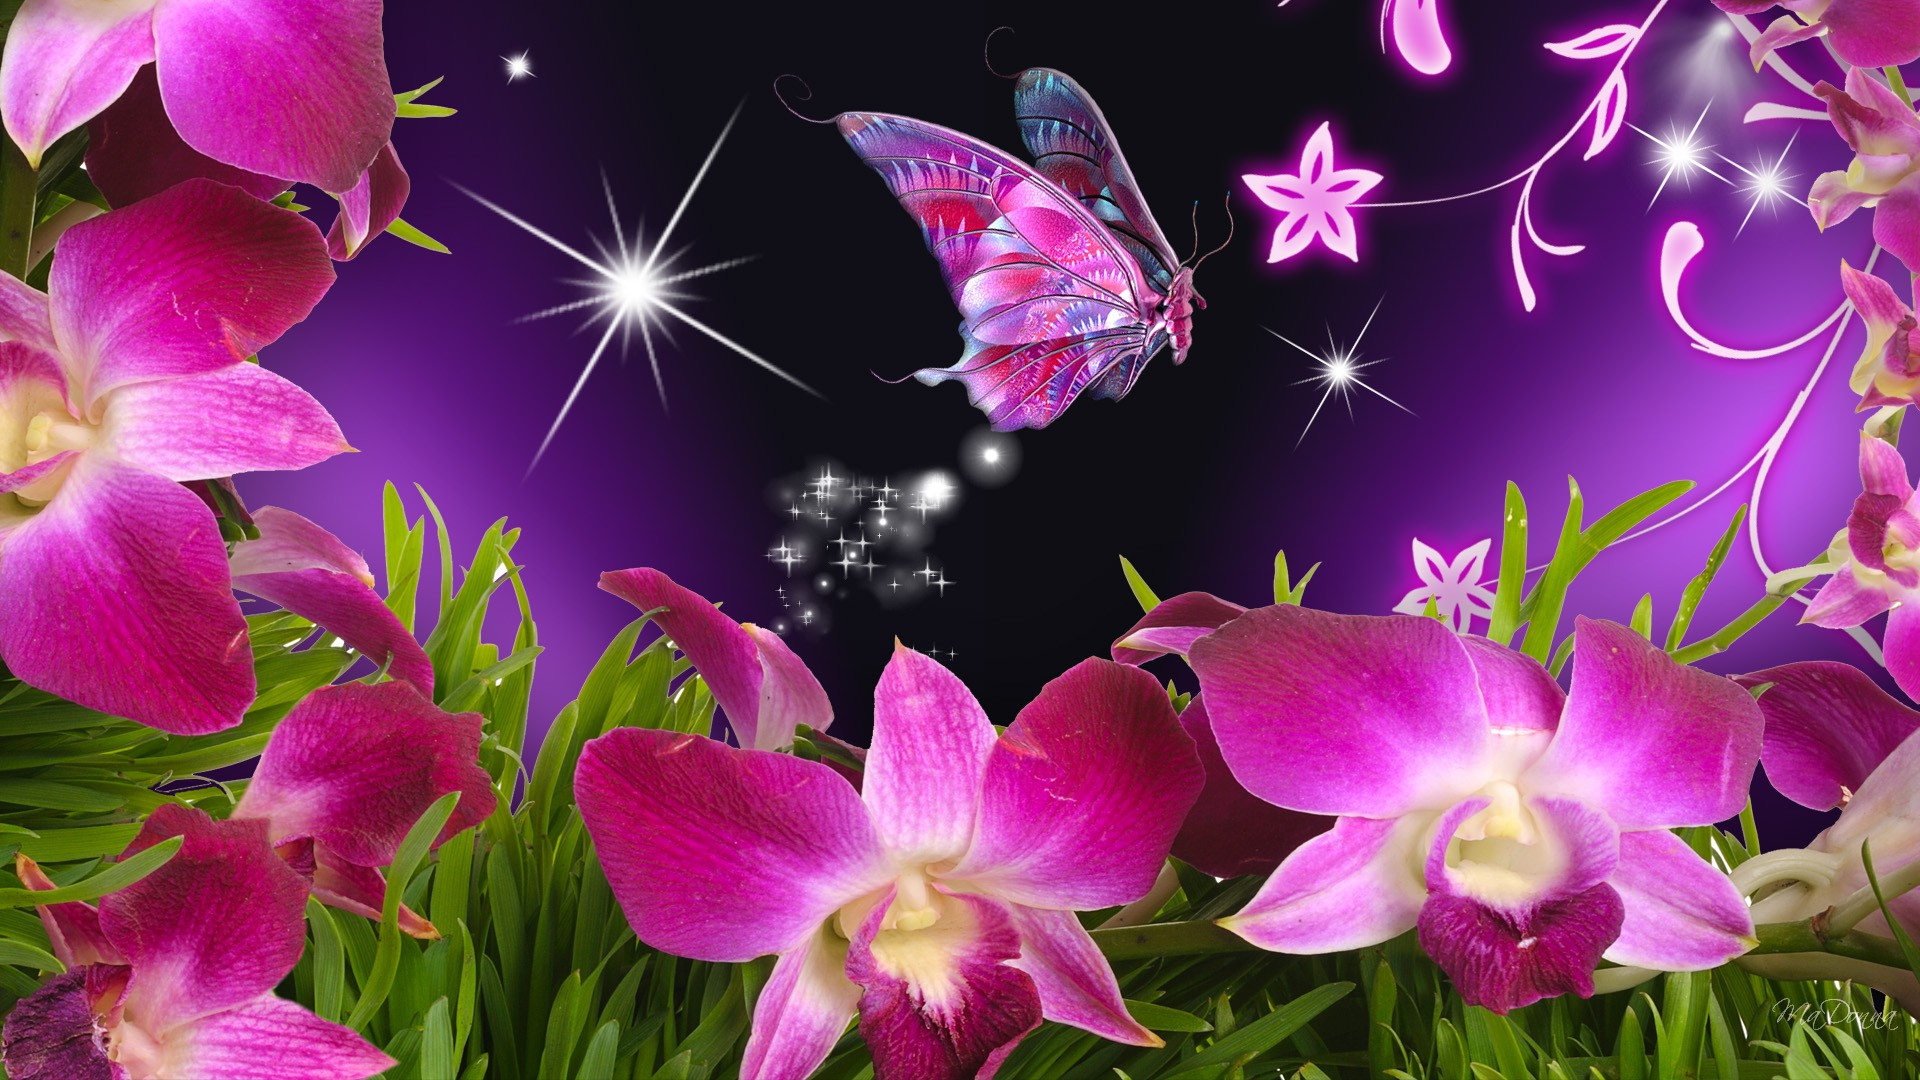 Butterfly and flower wallpaper   SF Wallpaper 1920x1080